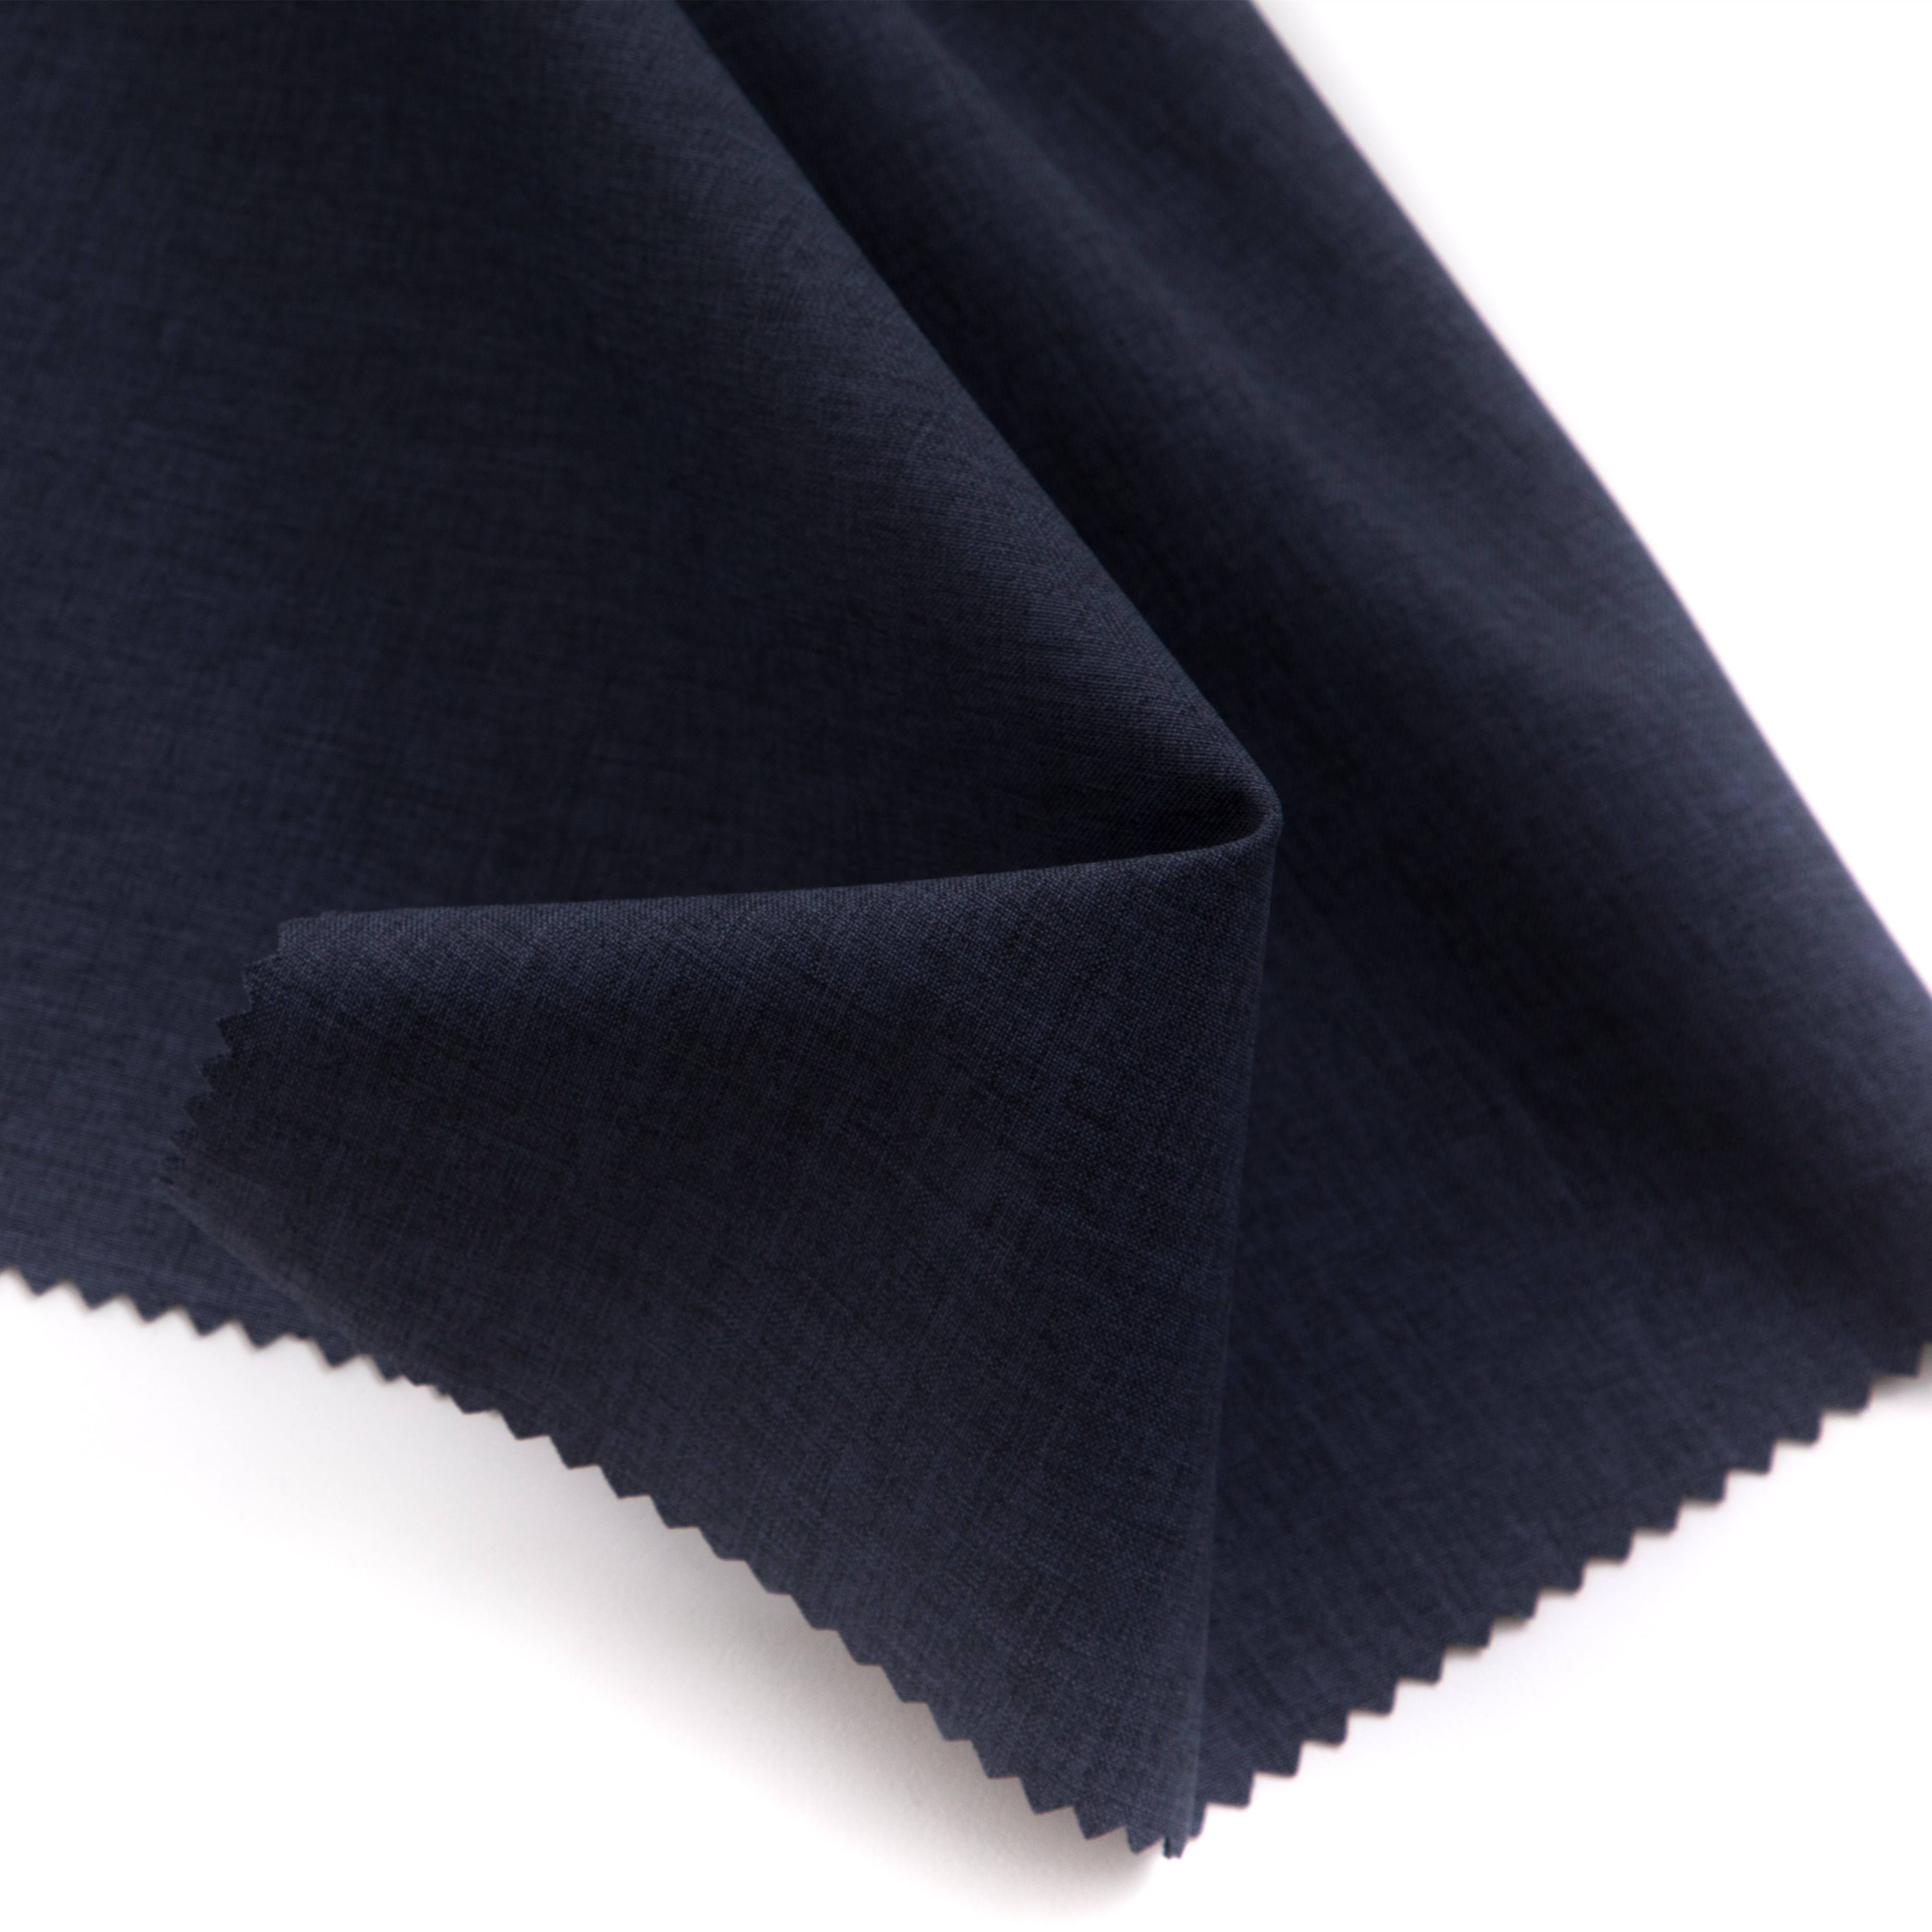 100 polyester 150D cationic functional fabric with TPU and birdeyes combined fabric for down jackets